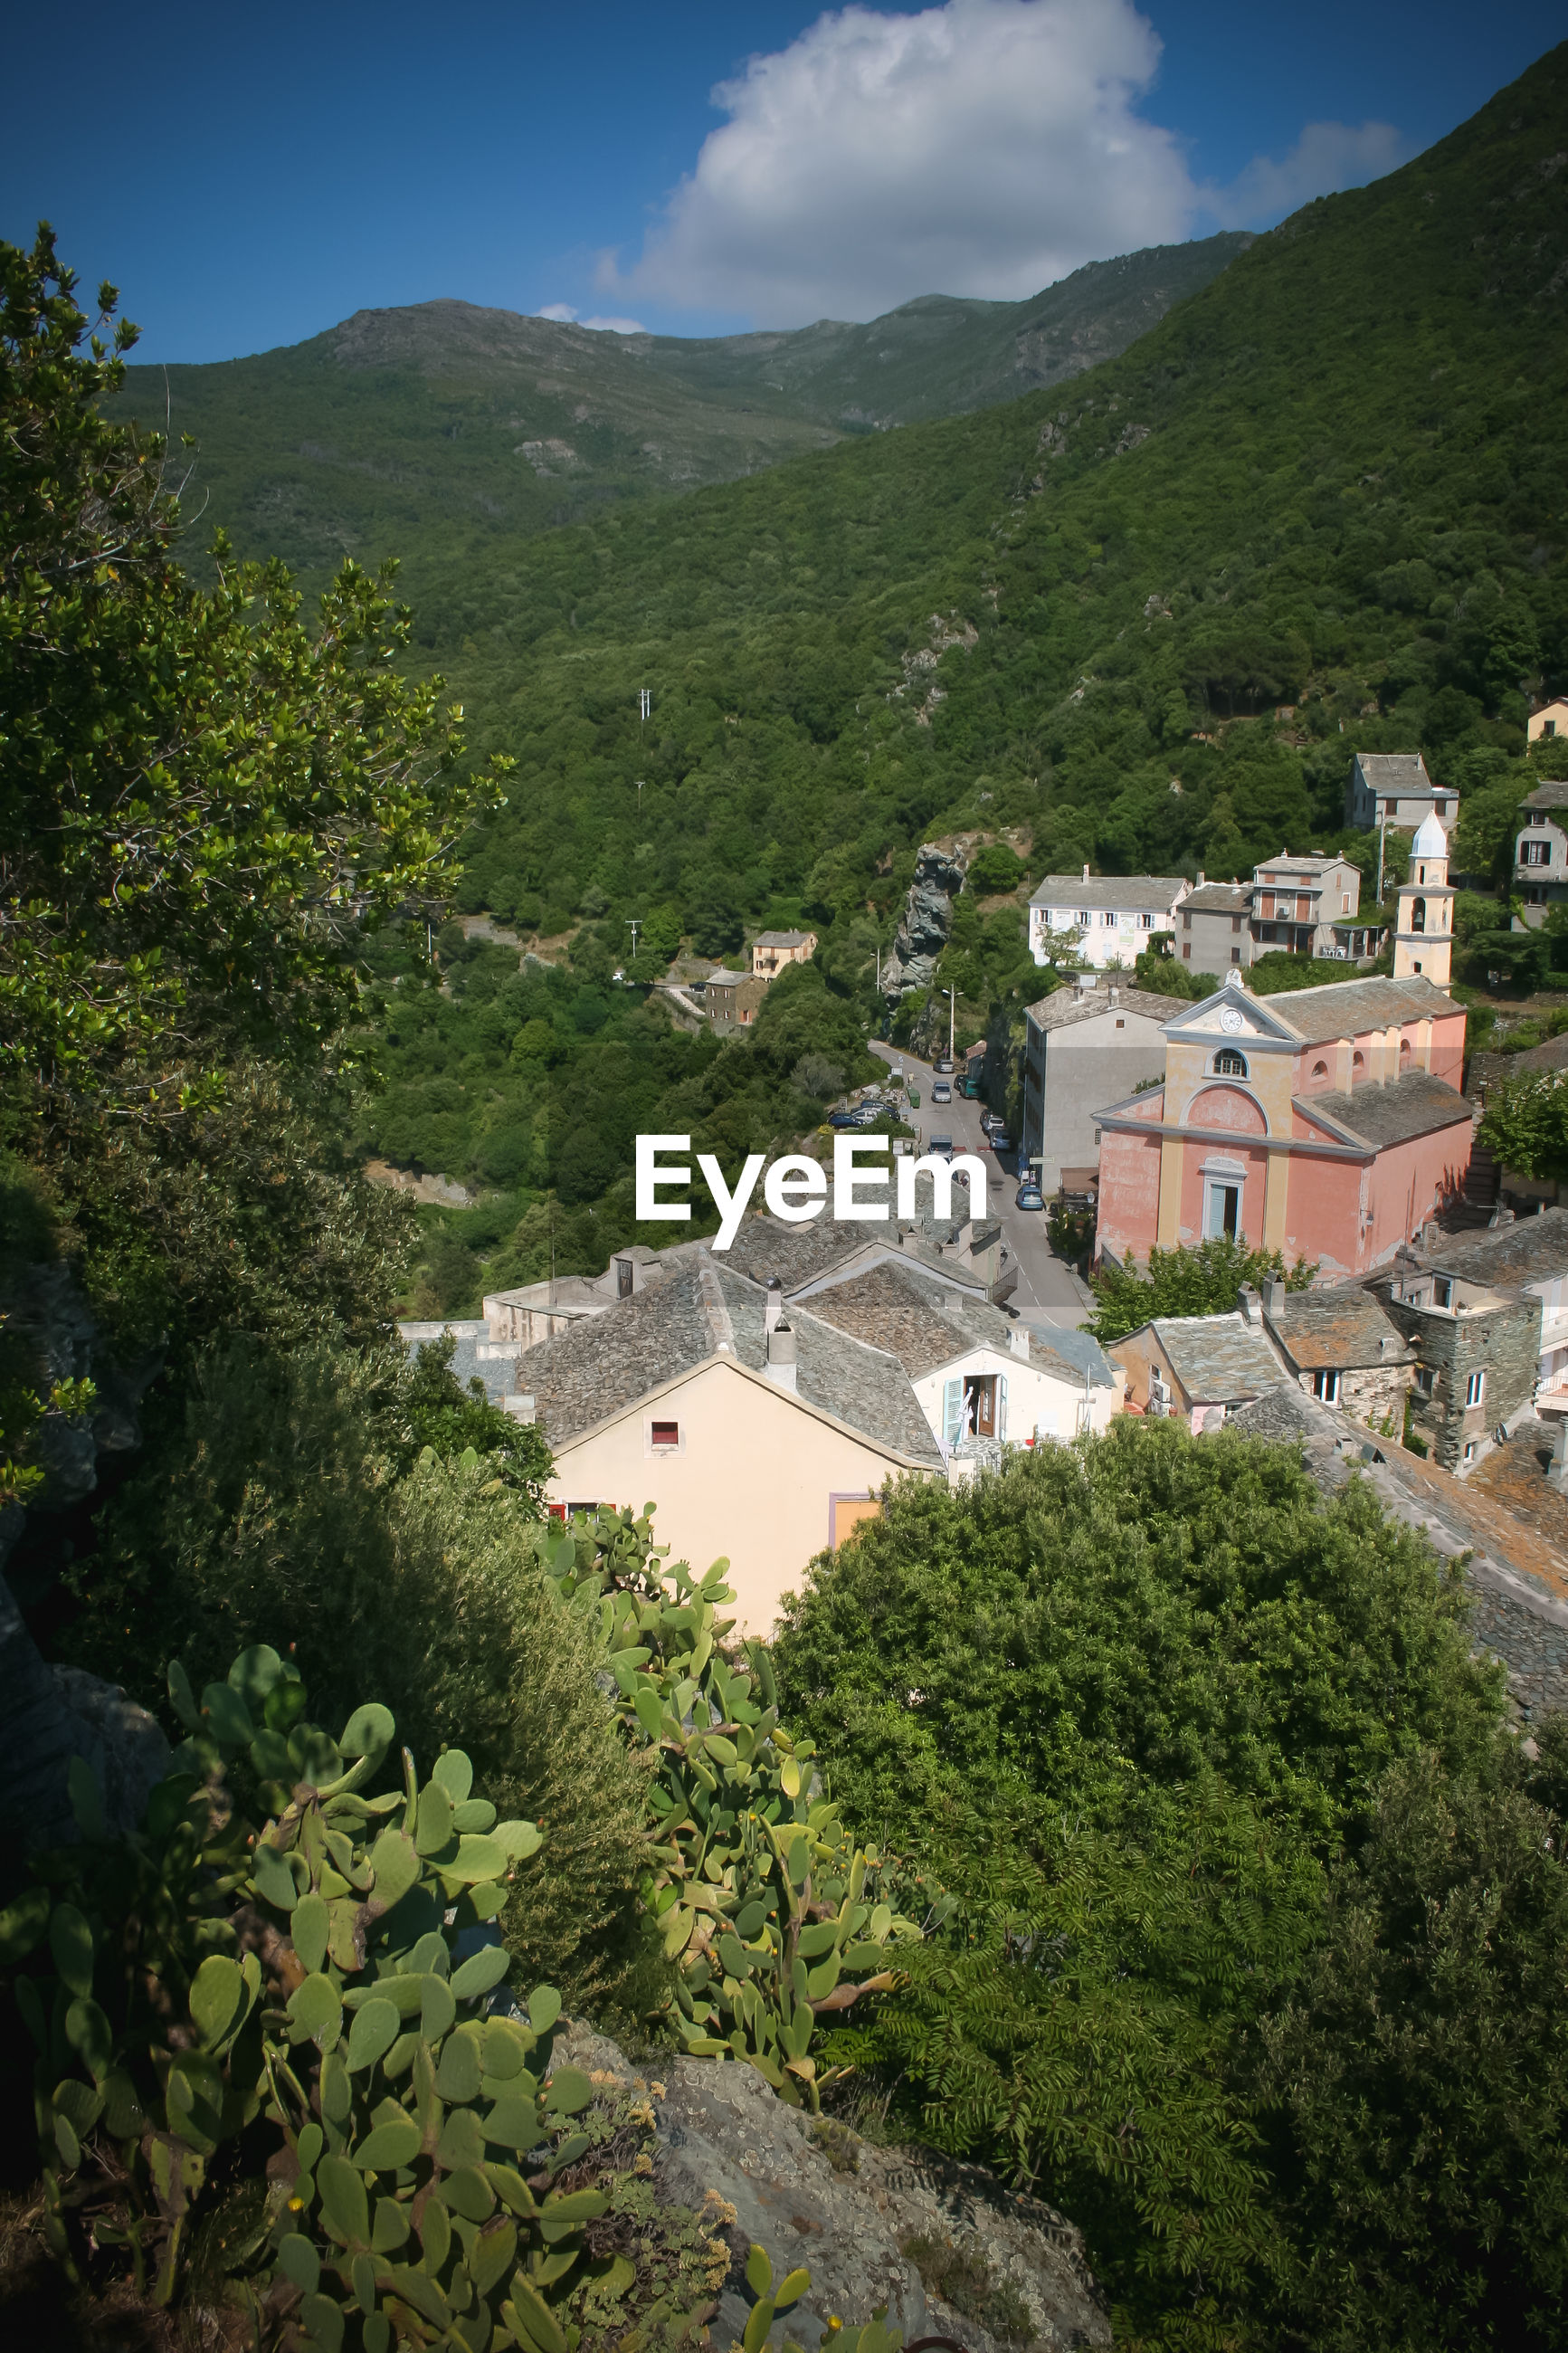 HIGH ANGLE VIEW OF BUILDINGS AND TREES ON MOUNTAIN